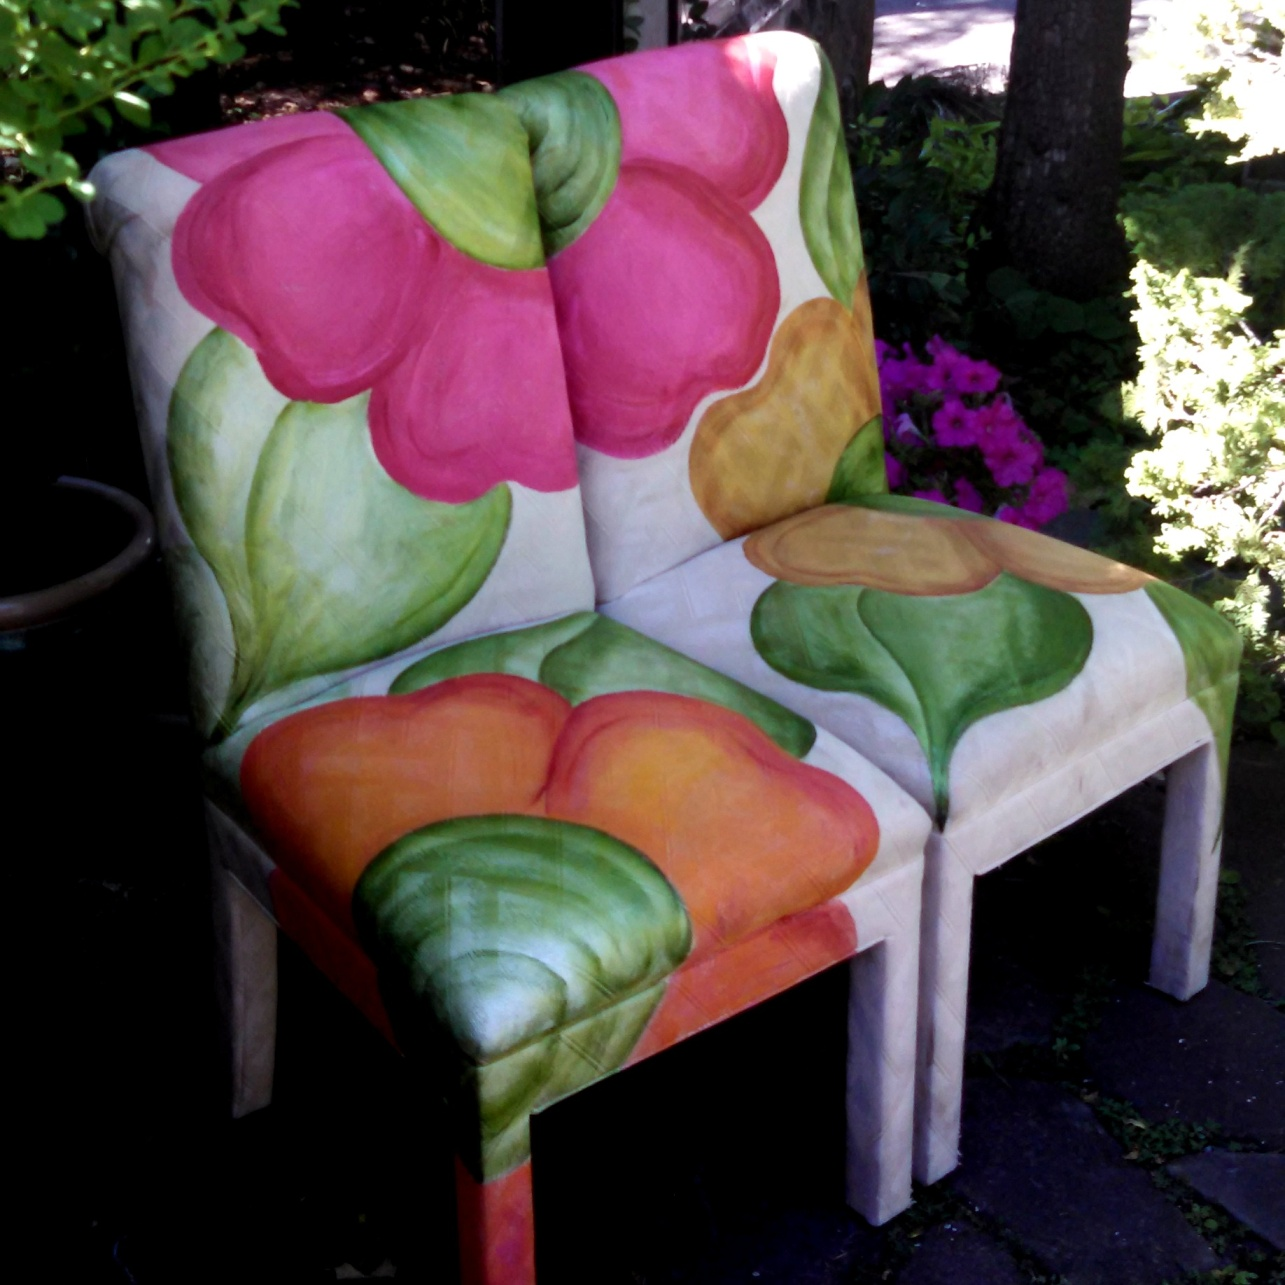 chairs-painted-parsons-dipytk-for-web-c2018-carole-shiber.jpg